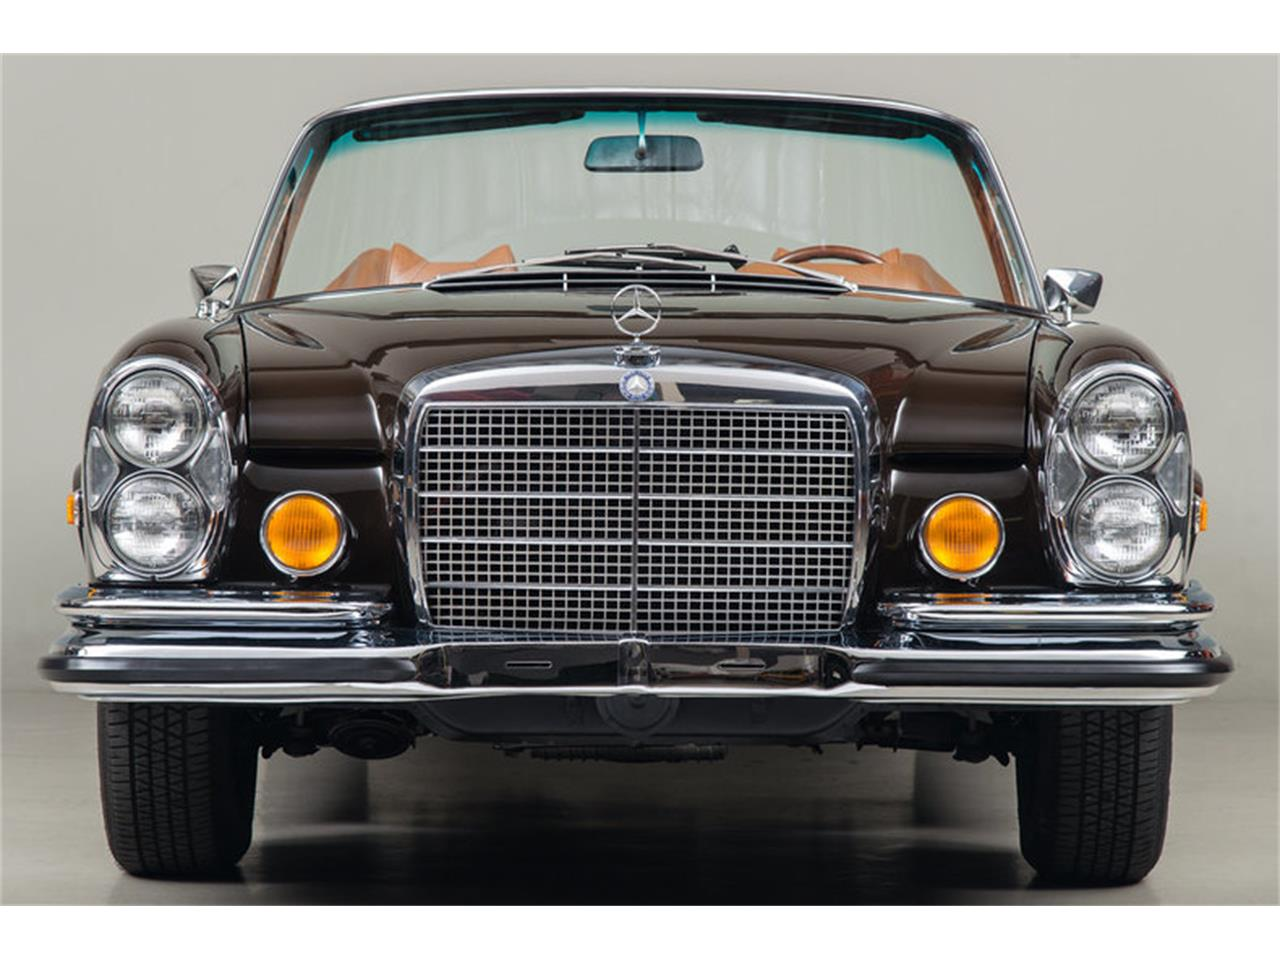 Large Picture of '71 Mercedes-Benz 280 SE 3.5 Cabriolet Auction Vehicle Offered by Canepa - G0JQ